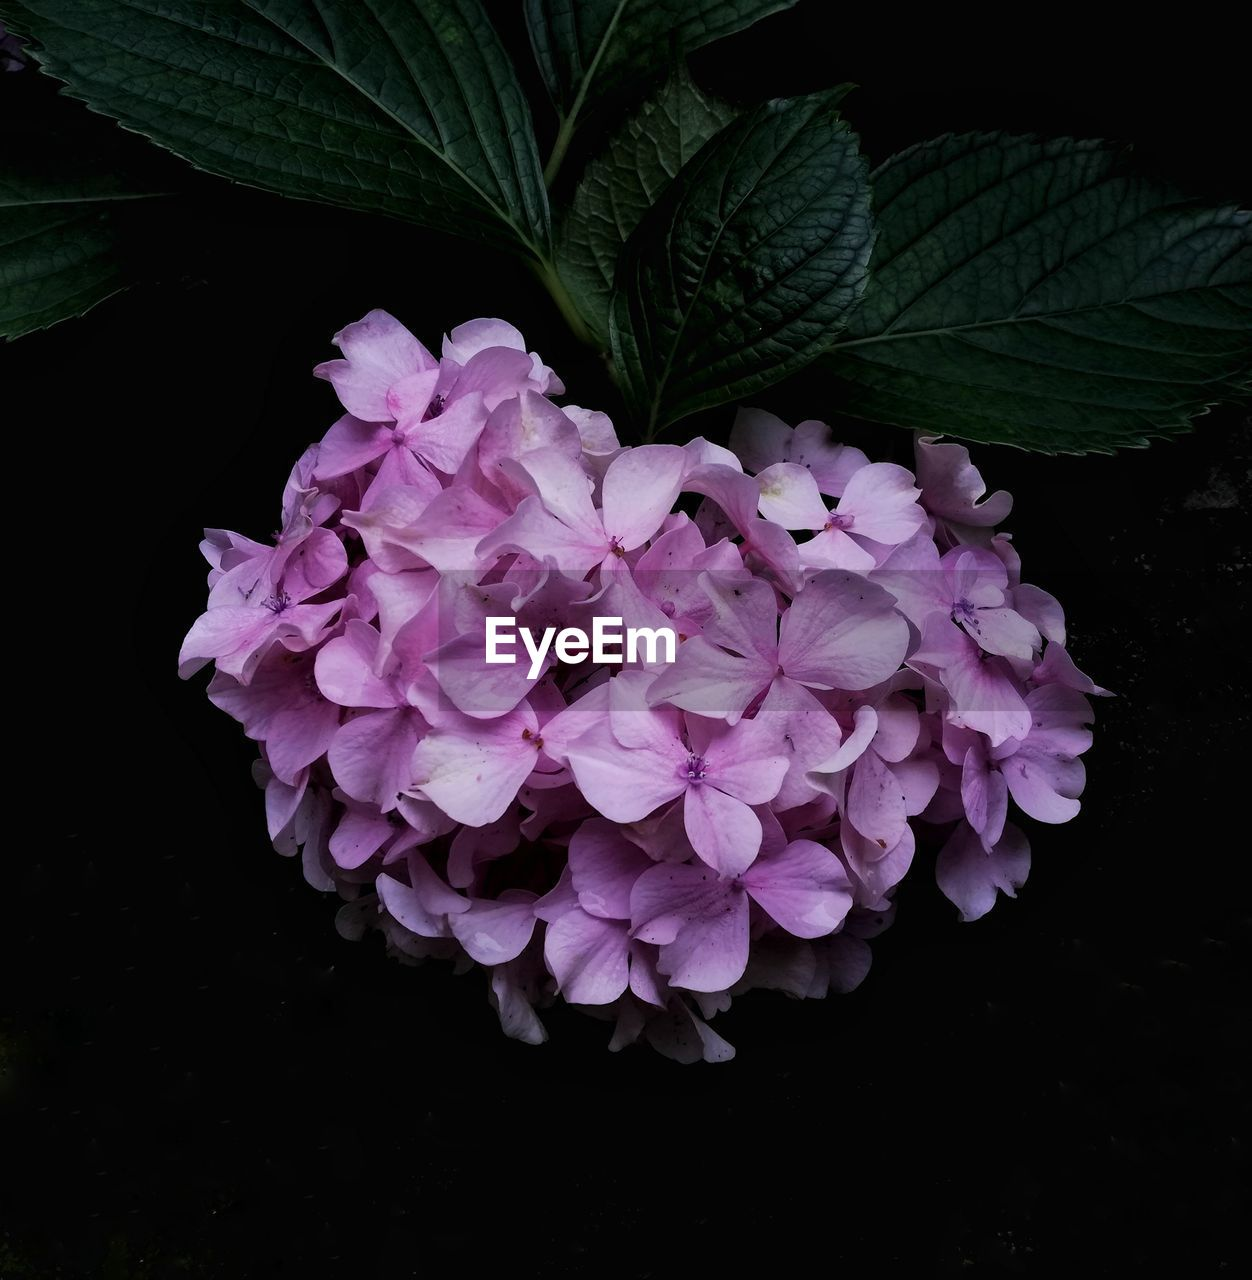 plant, flower, pink color, beauty in nature, freshness, flowering plant, petal, fragility, vulnerability, leaf, plant part, inflorescence, close-up, flower head, growth, nature, no people, purple, studio shot, outdoors, black background, bunch of flowers, lilac